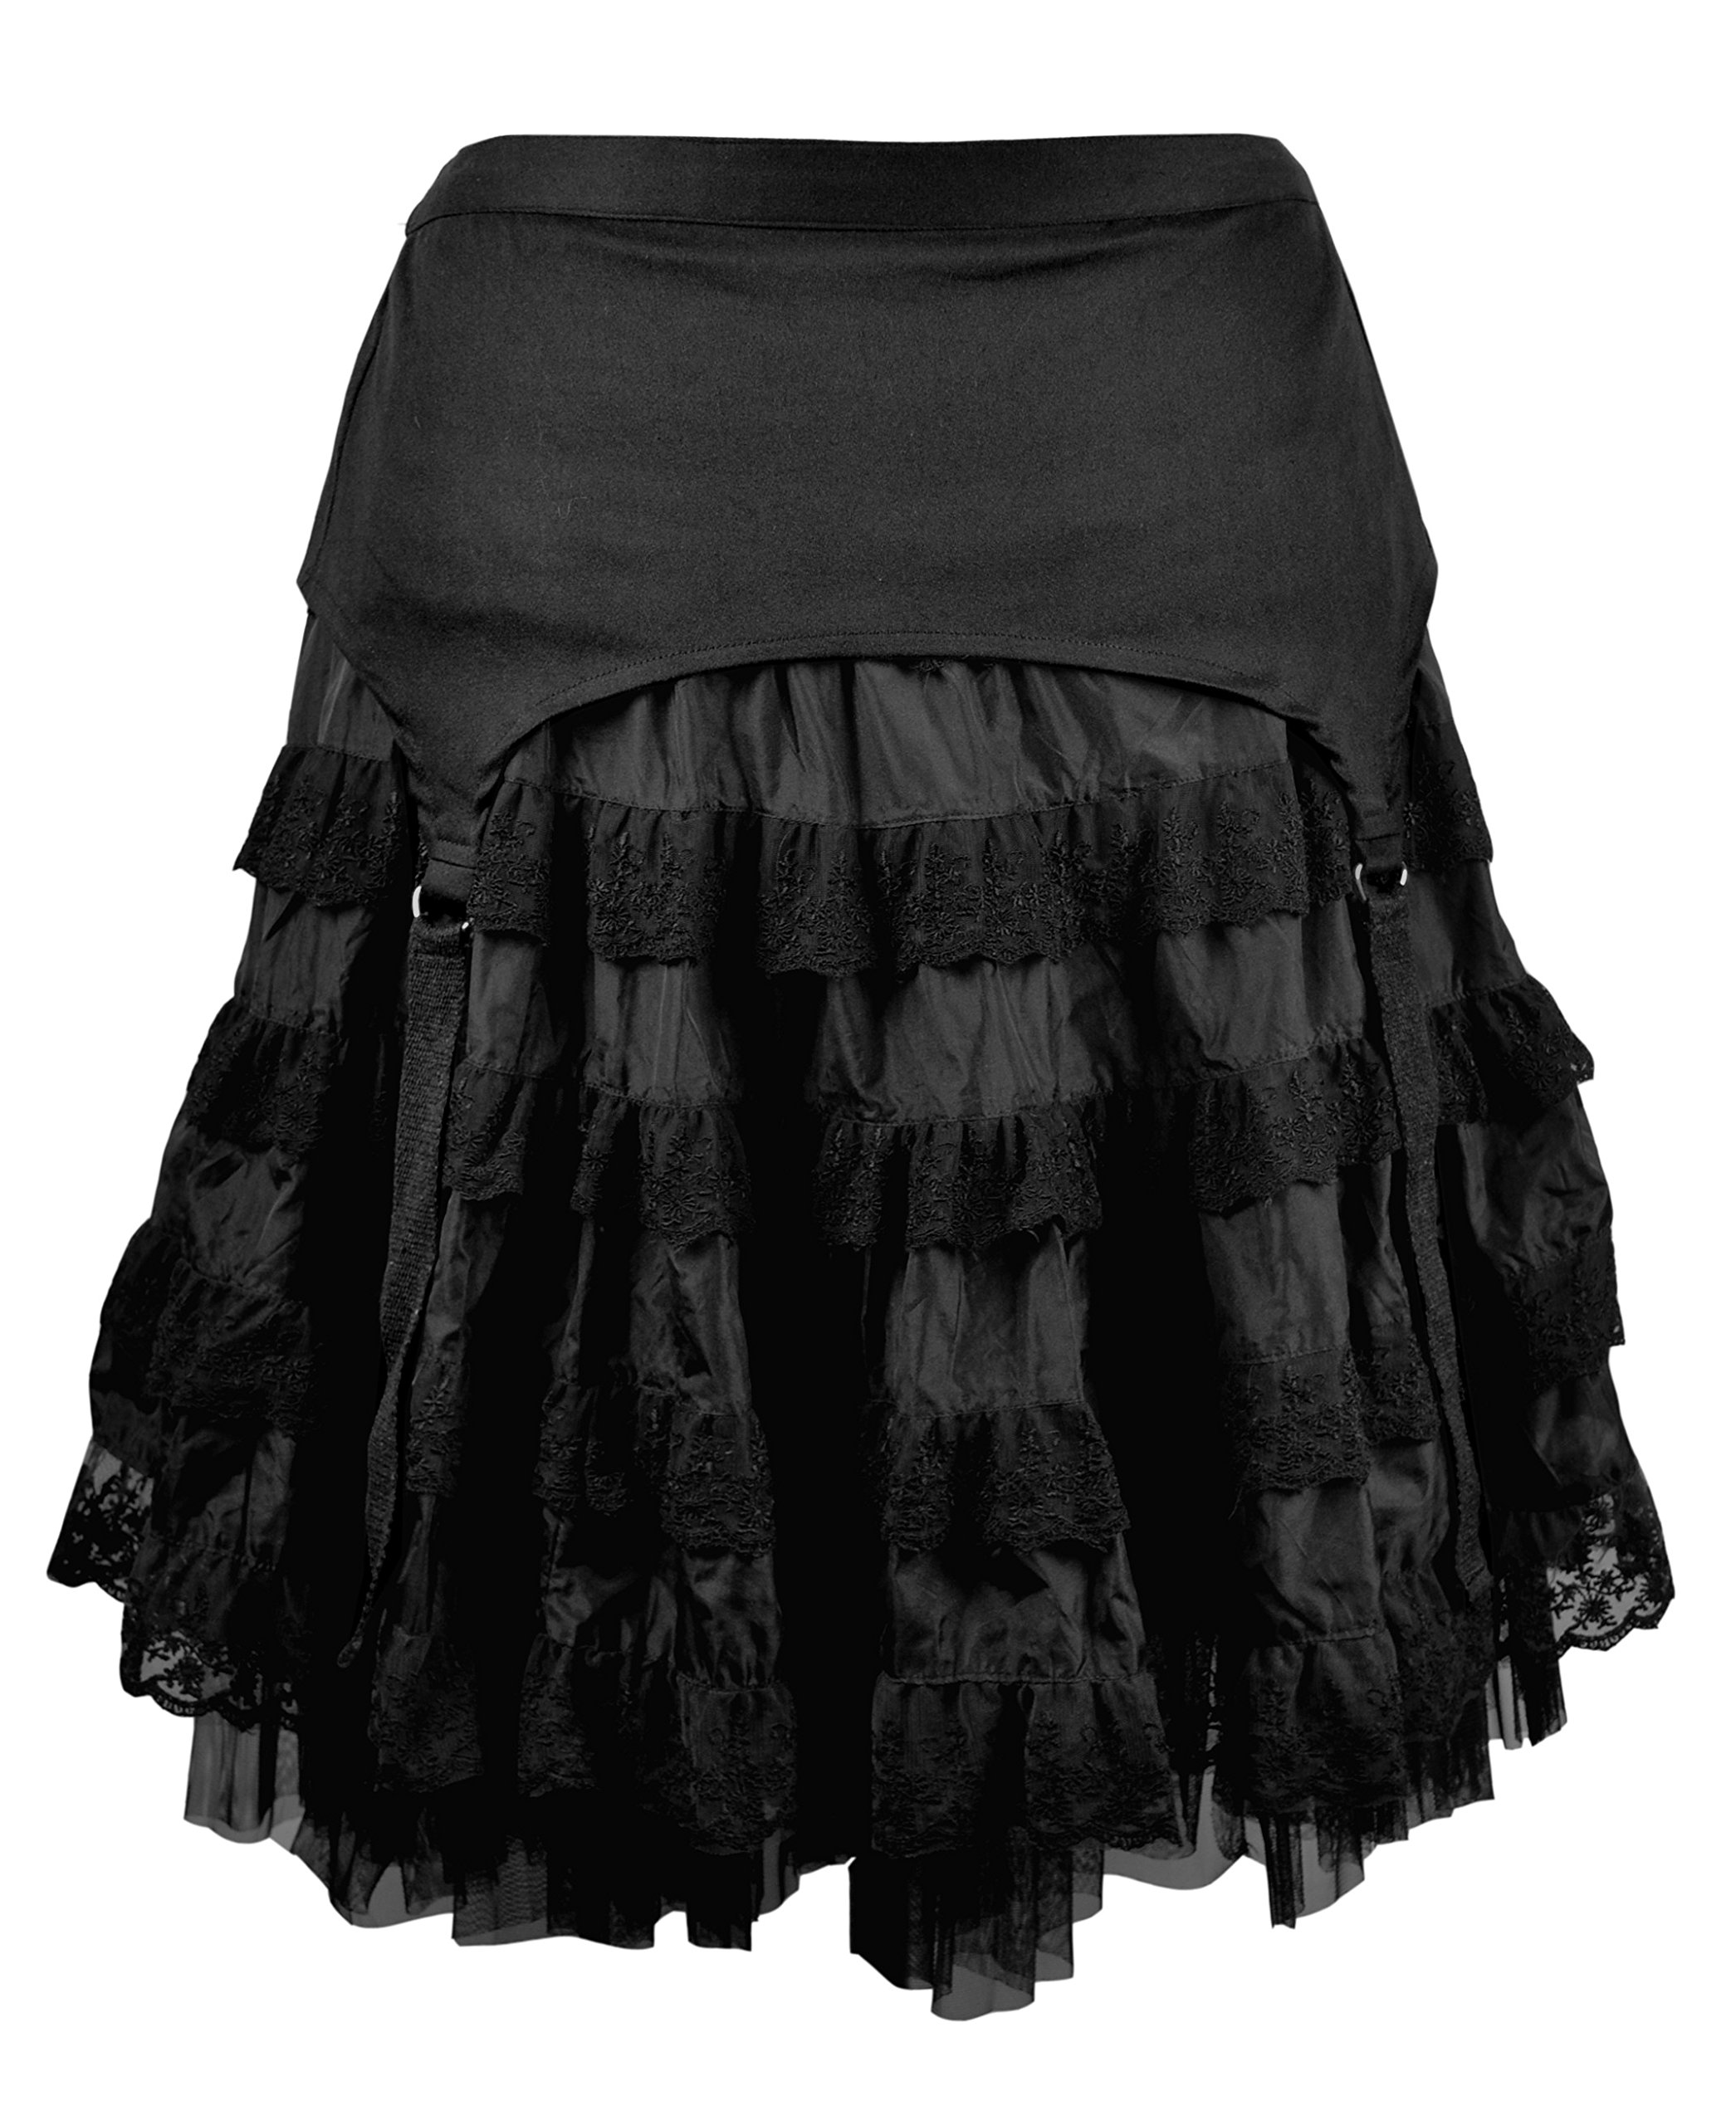 Dark Star Plus Size Black Lace Gothic Tiered D Ring Garter Punk Skirt 1X-3X